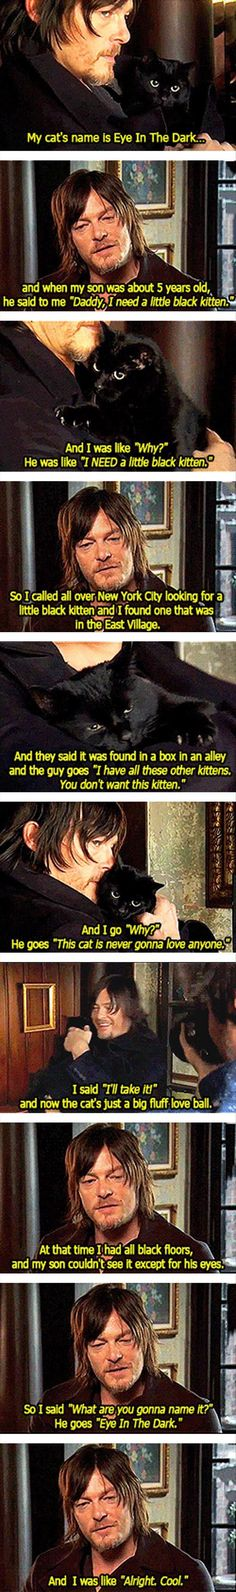 I think this is a really sweet story, and coming from freaking DARYL DIXON makes it even sweater